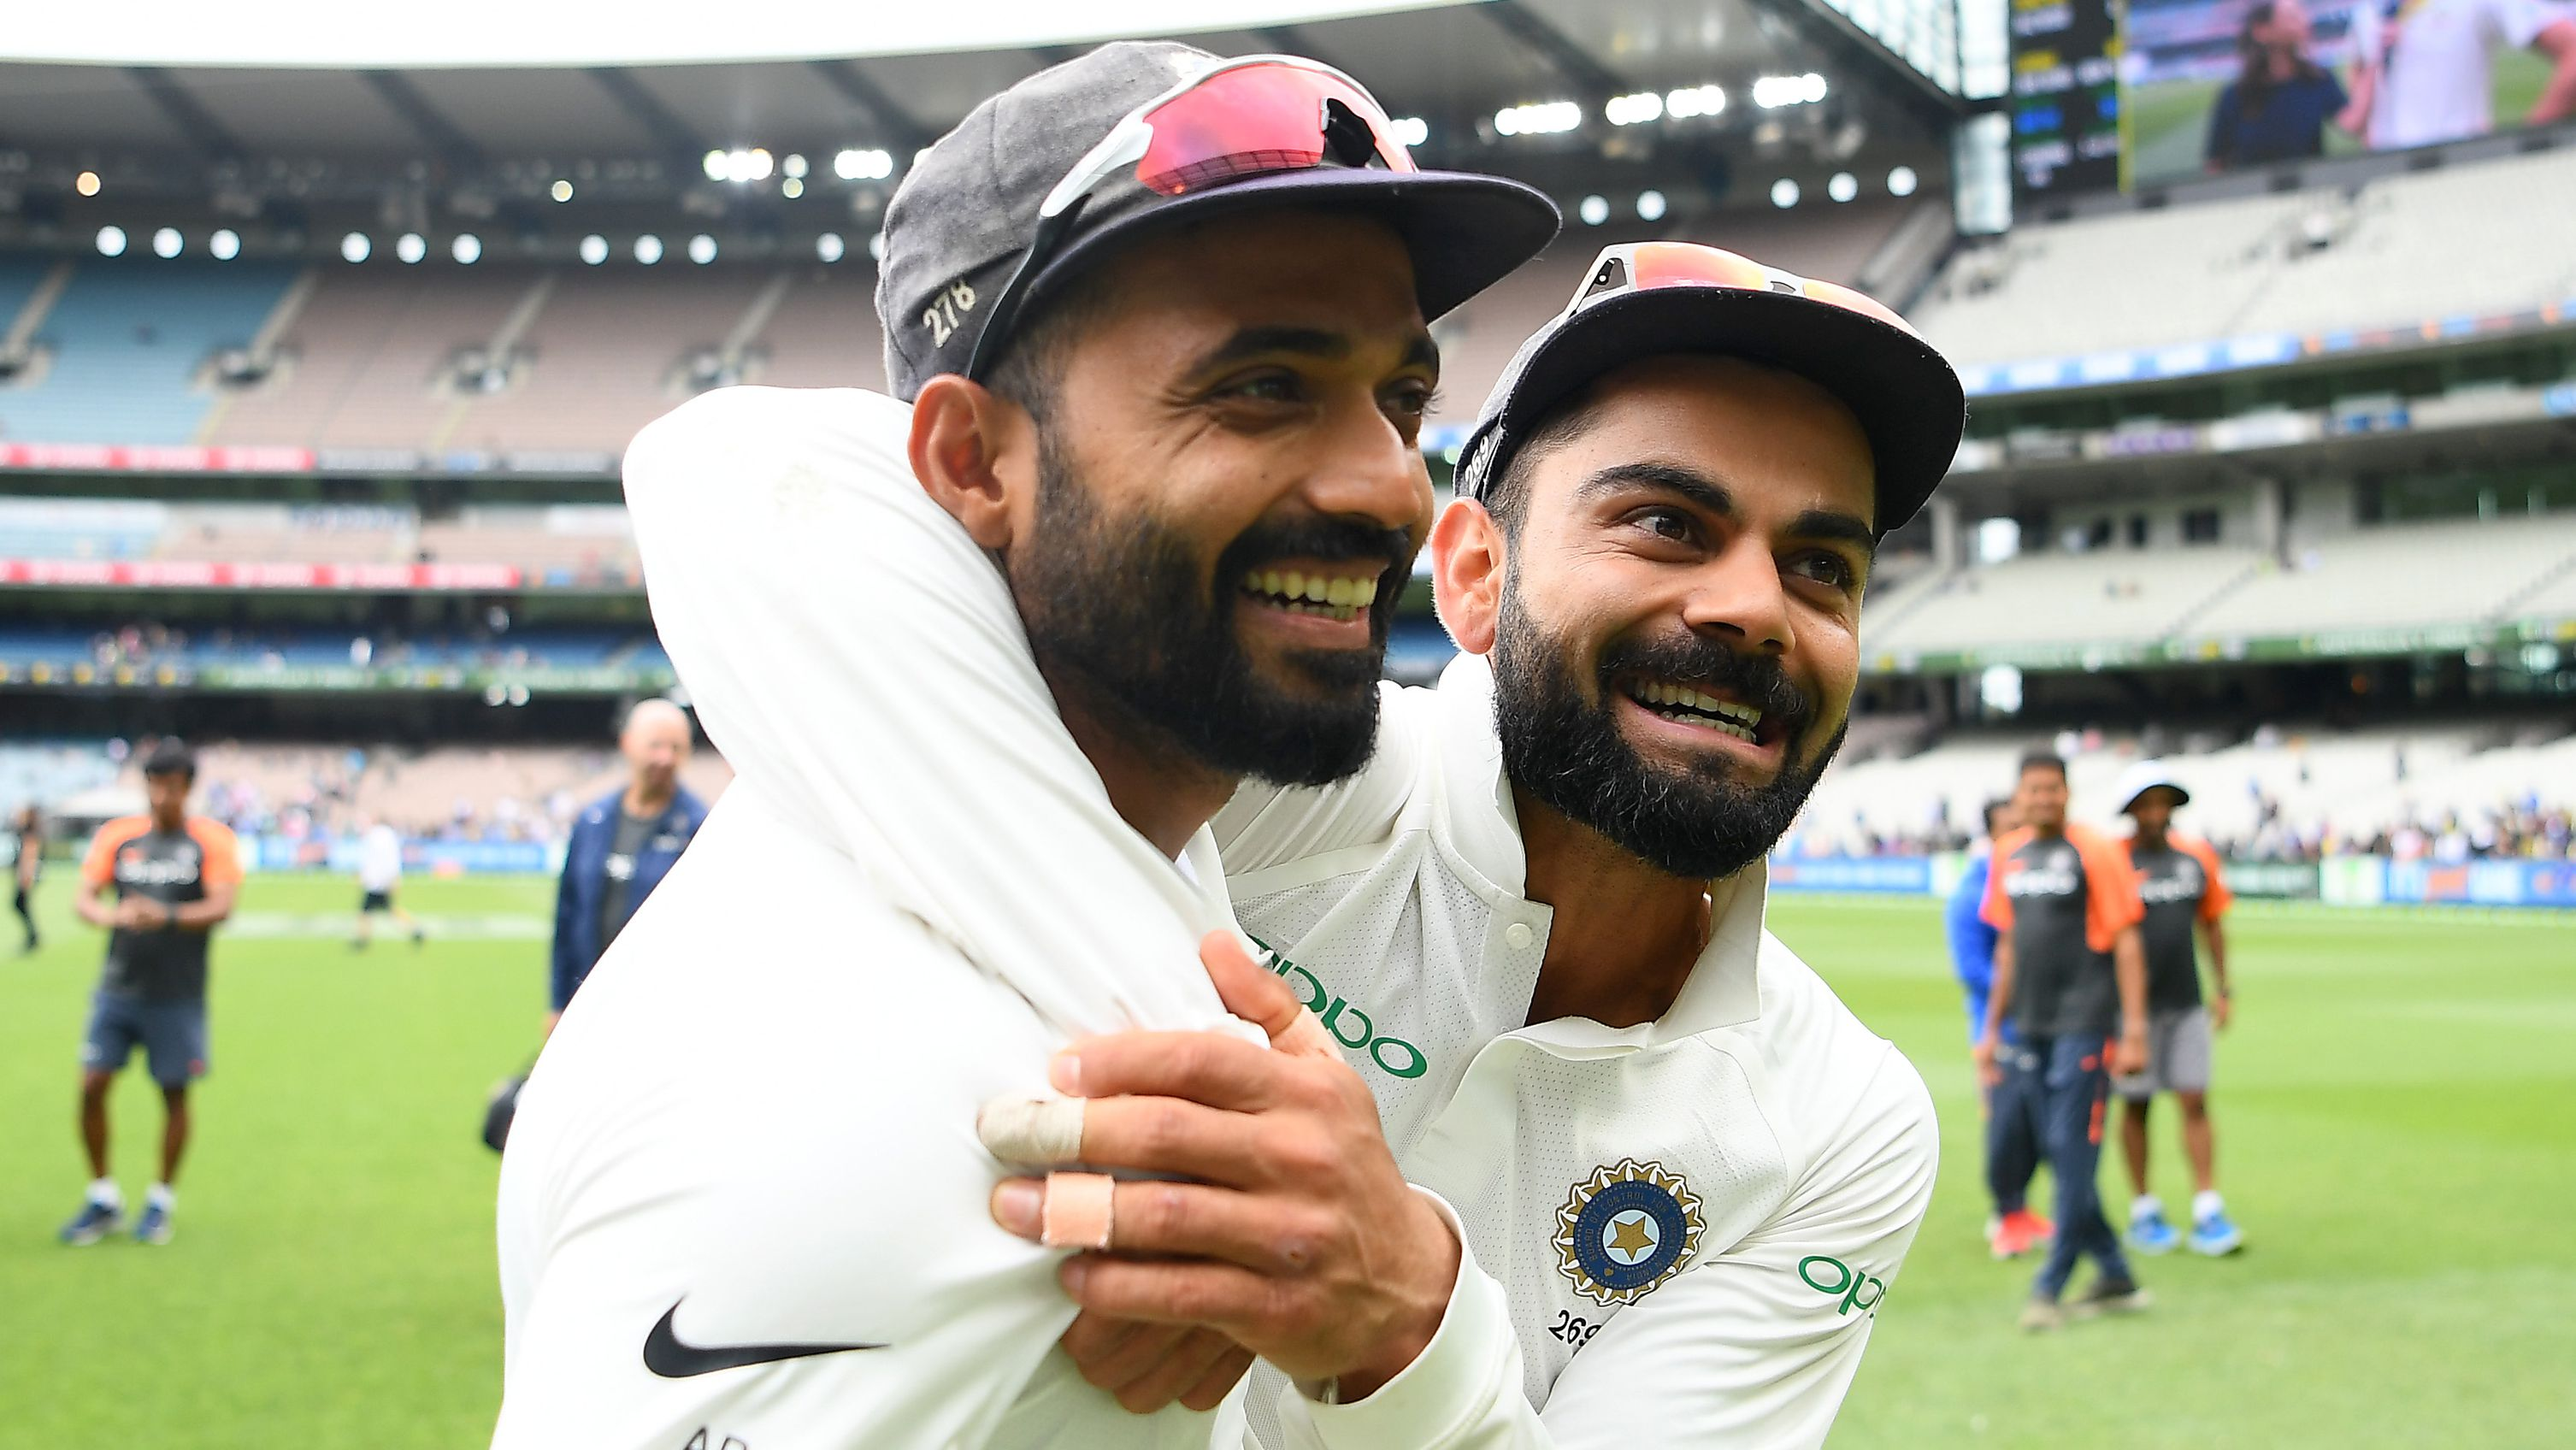 India's stand-in skipper Ajinkya Rahane described as a superior captain to Virat Kohli – Wide World of Sports